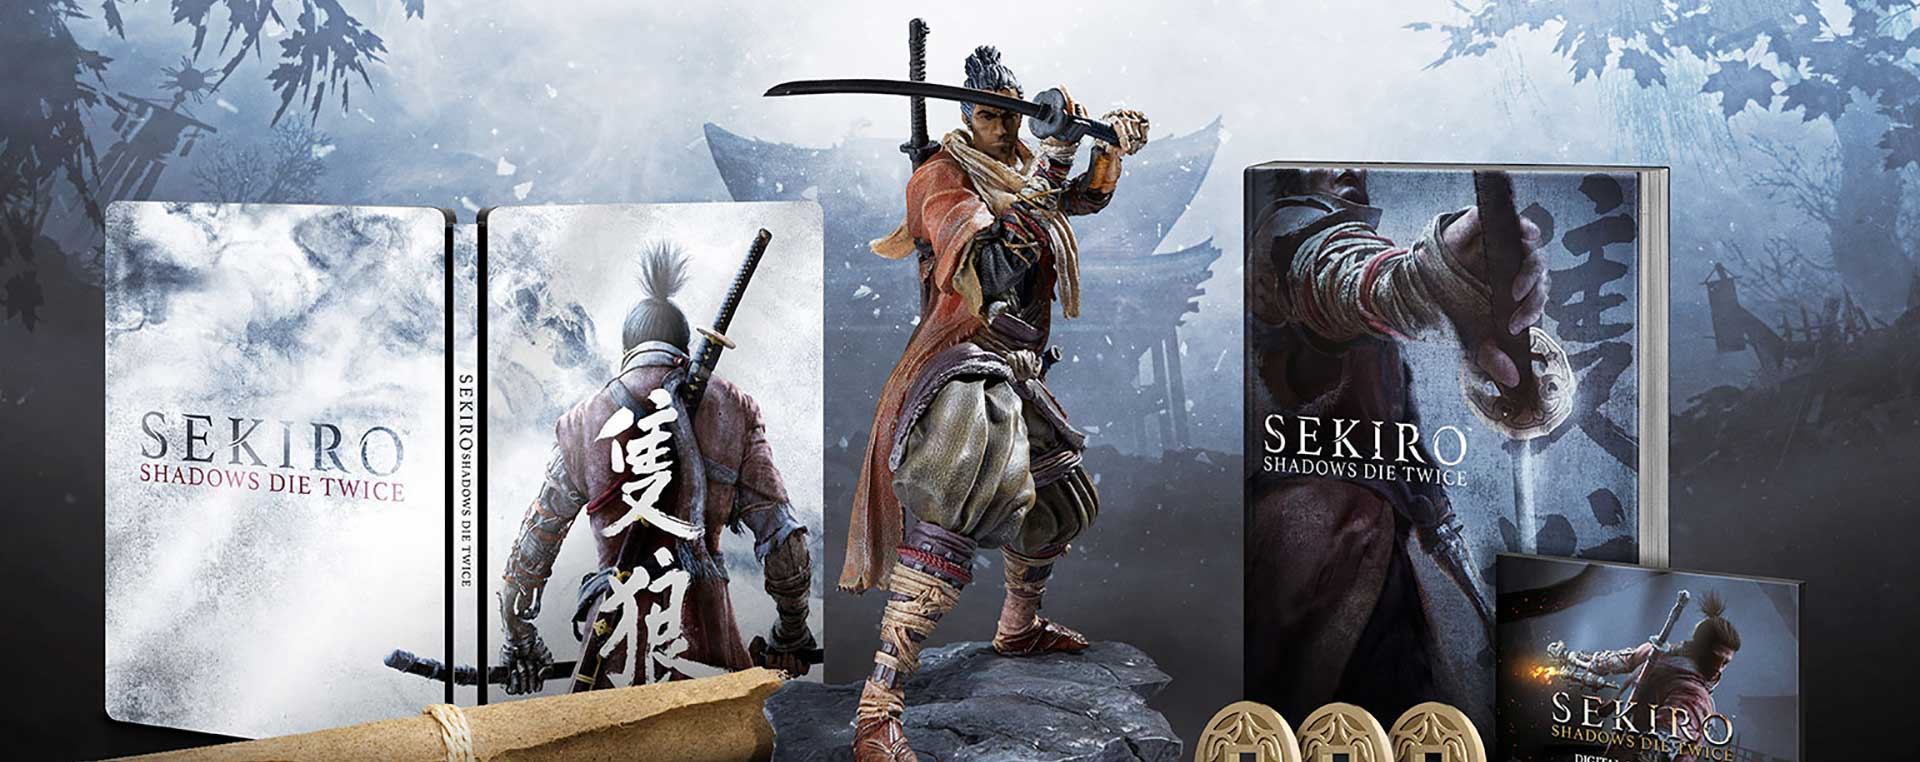 activision sekiro steelbook  Sekiro: Shadows Die Twice Launching on March 22, 2019!